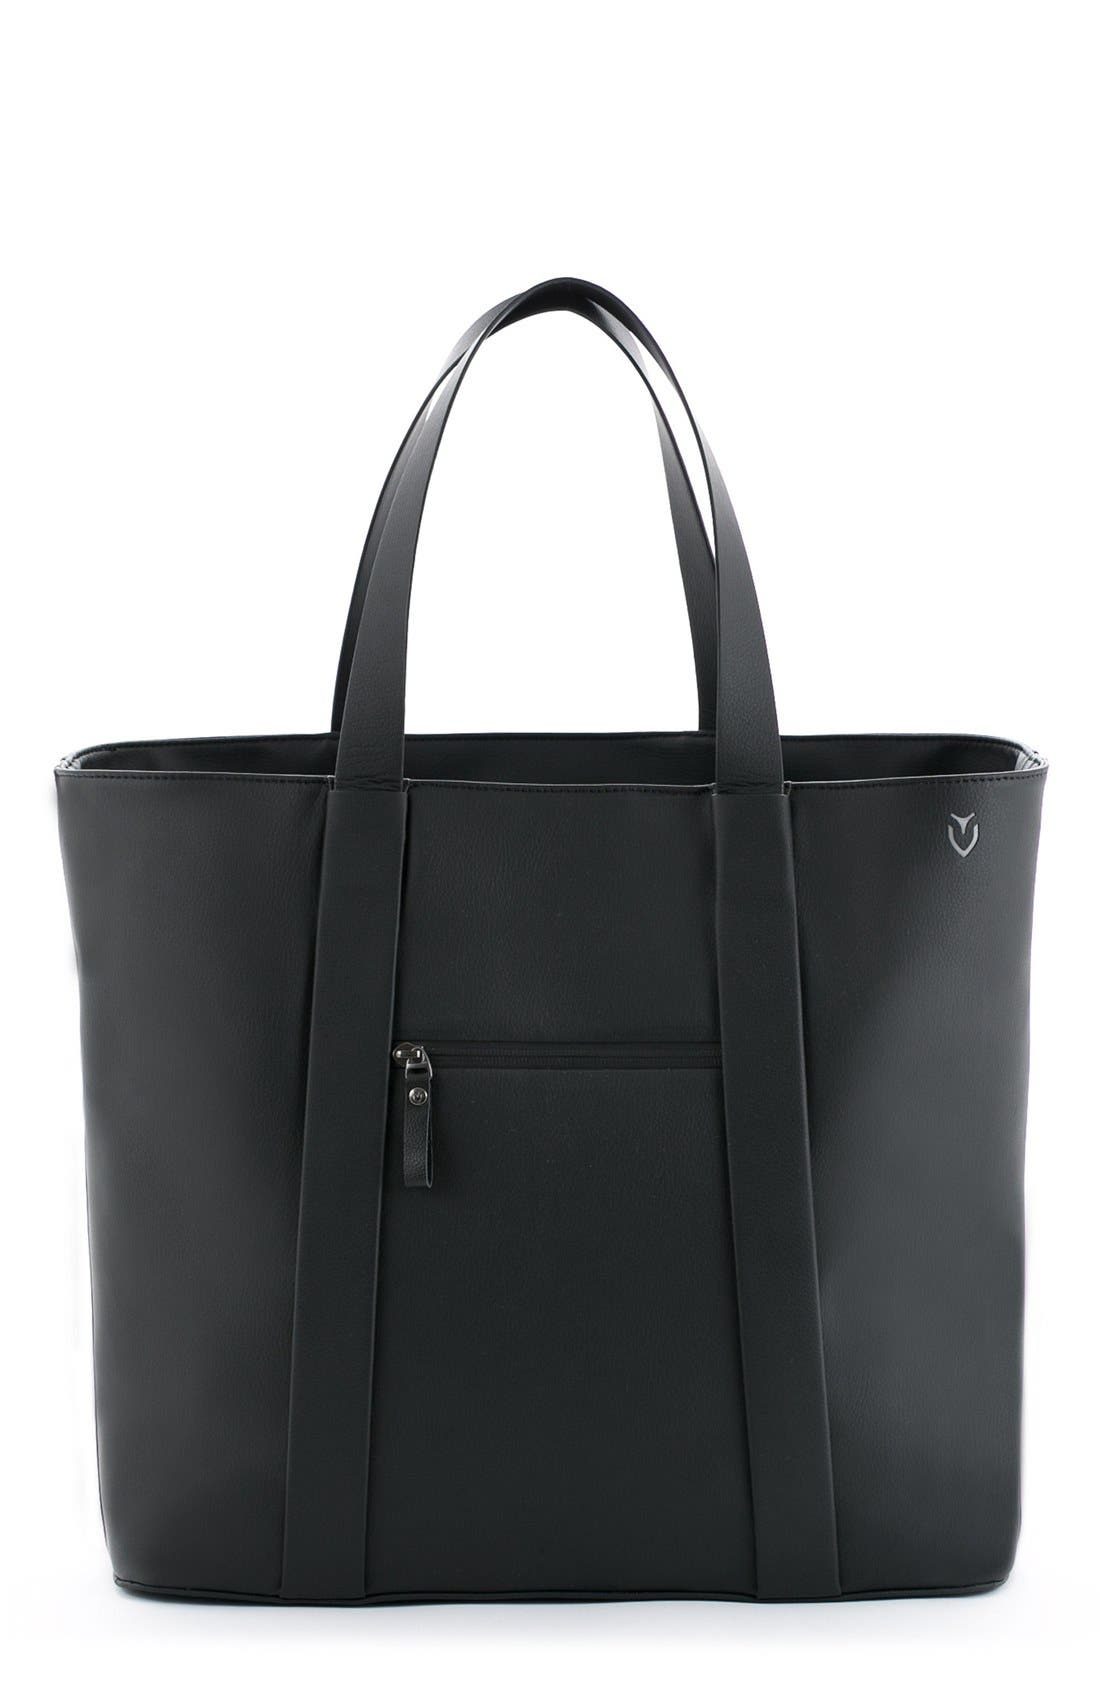 Vessel 'Signature' Leather Tote Bag